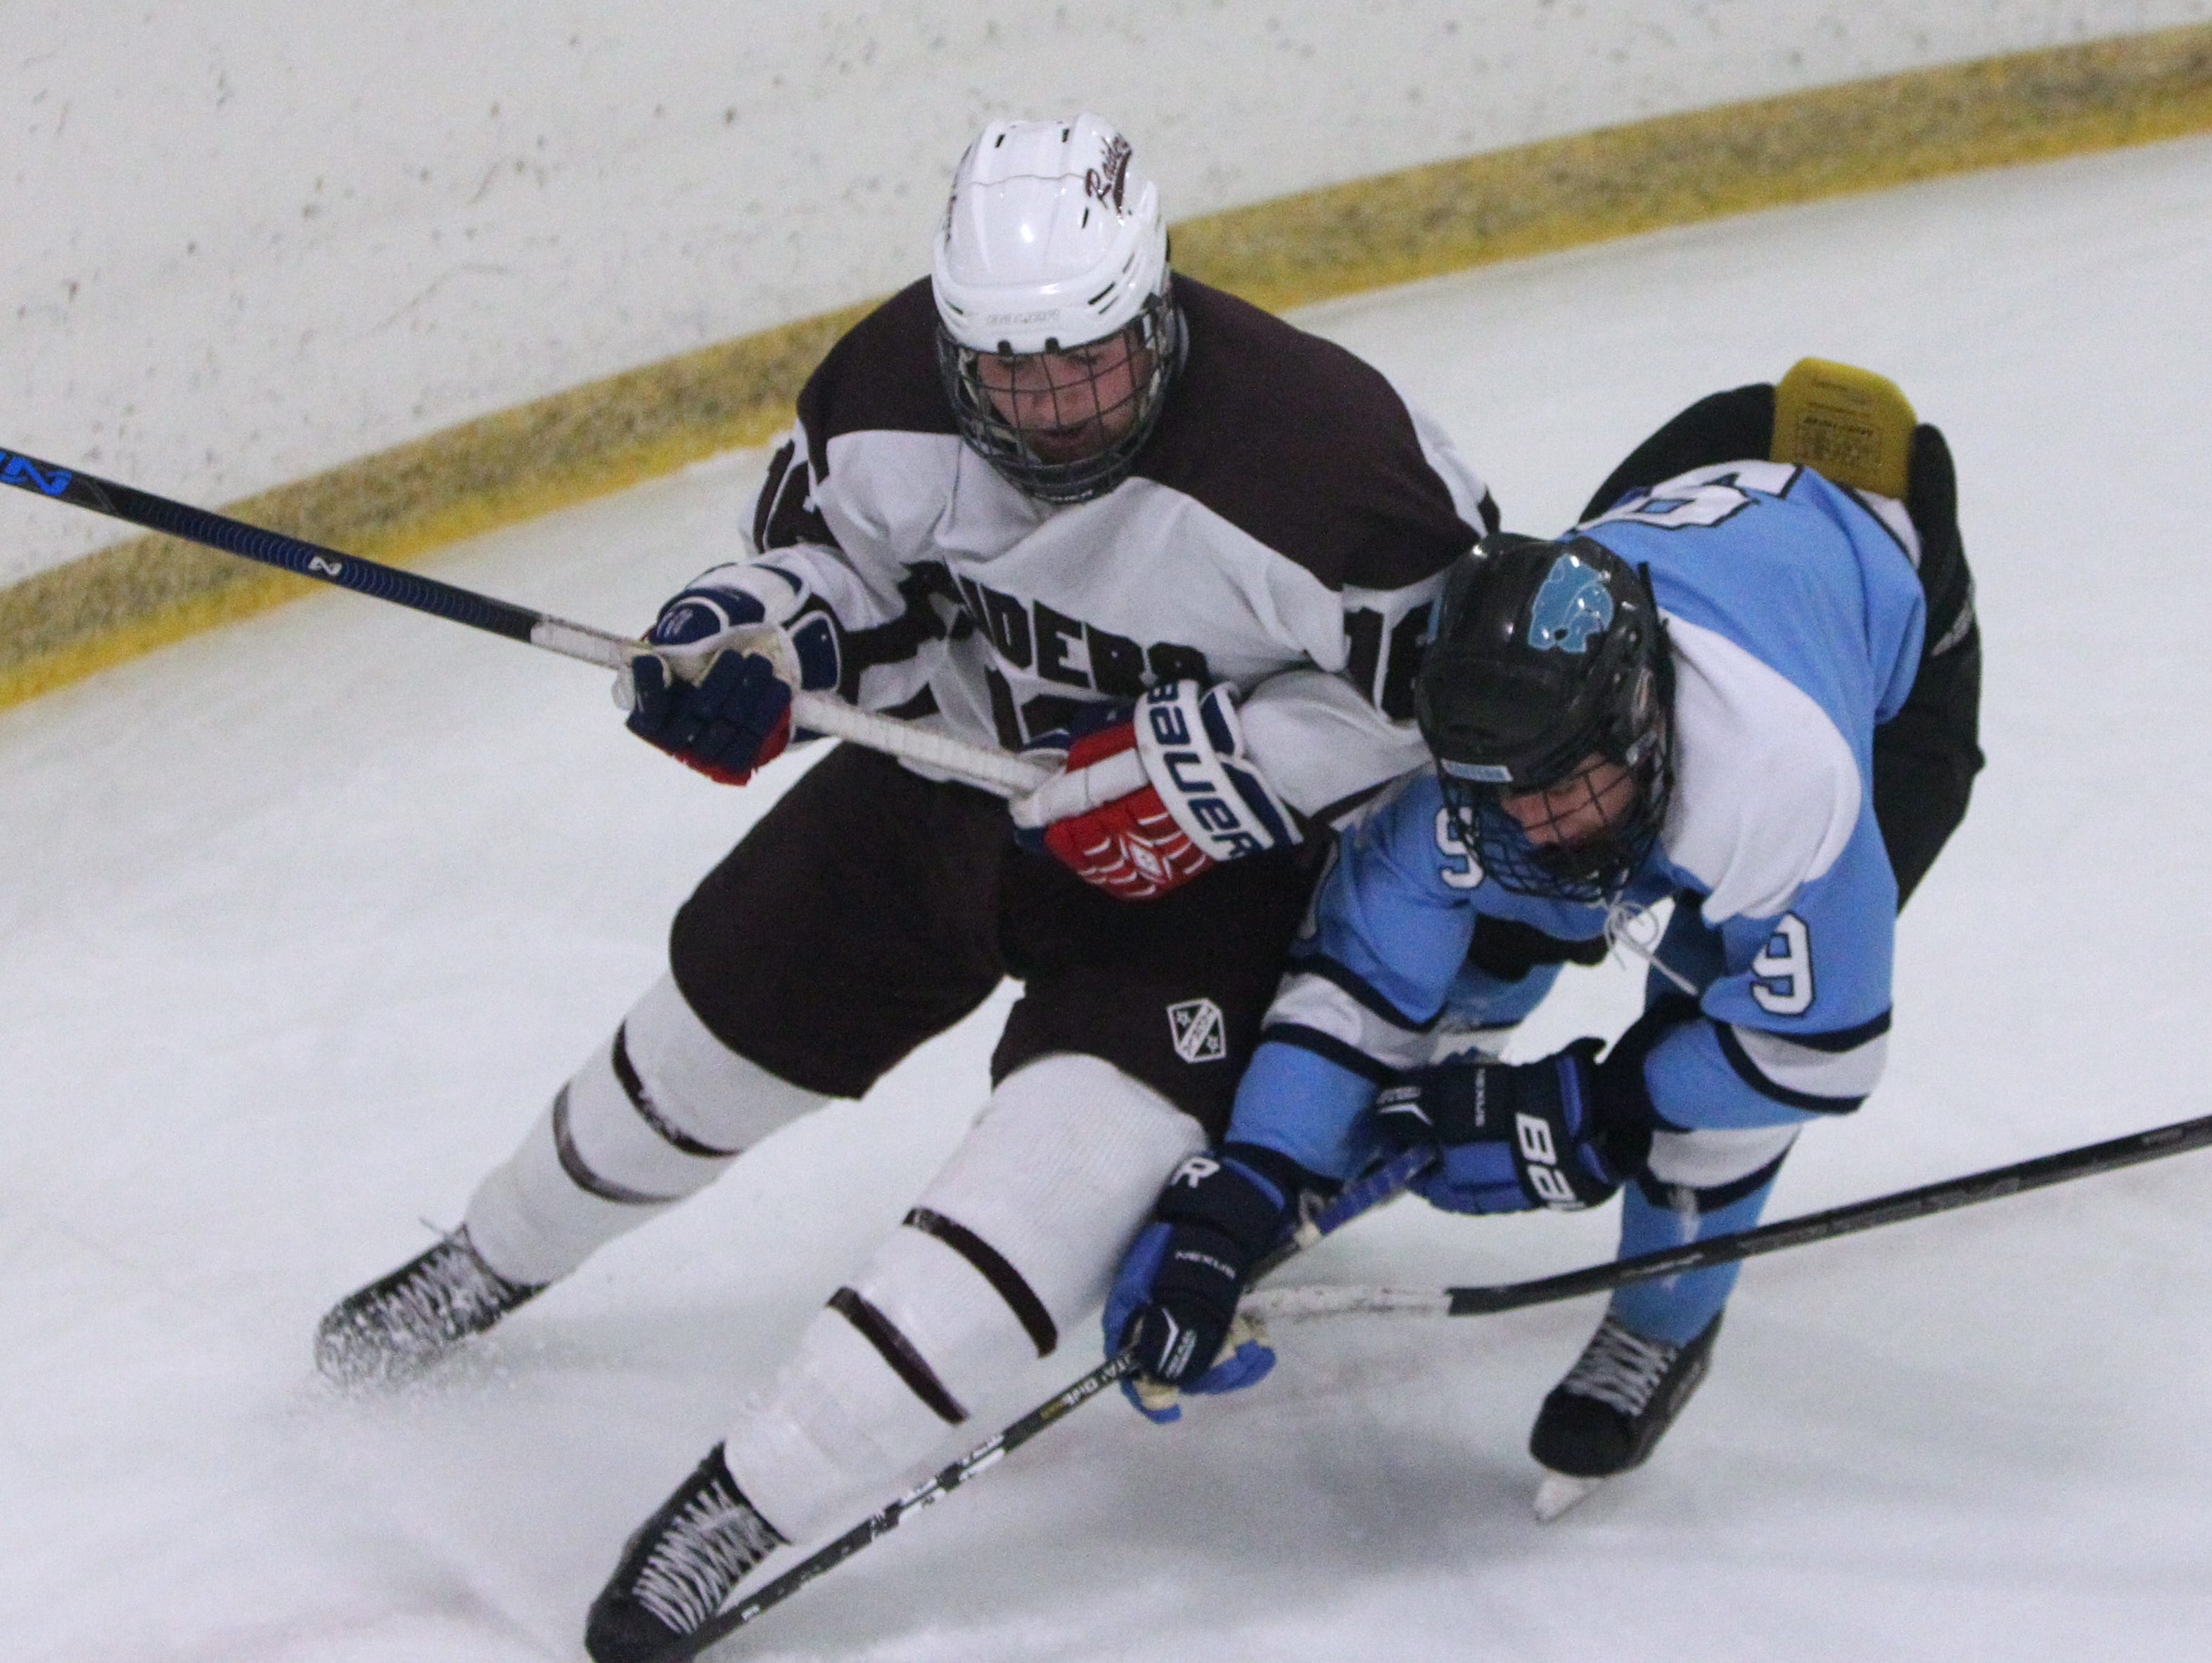 Scarsdale's Erin Nicholas, left, fights for the puck with Suffern's Tim Patwell during their game at the E.J. Murray rink in Yonkers Dec. 7, 2015. Scarsdale won 1-0.